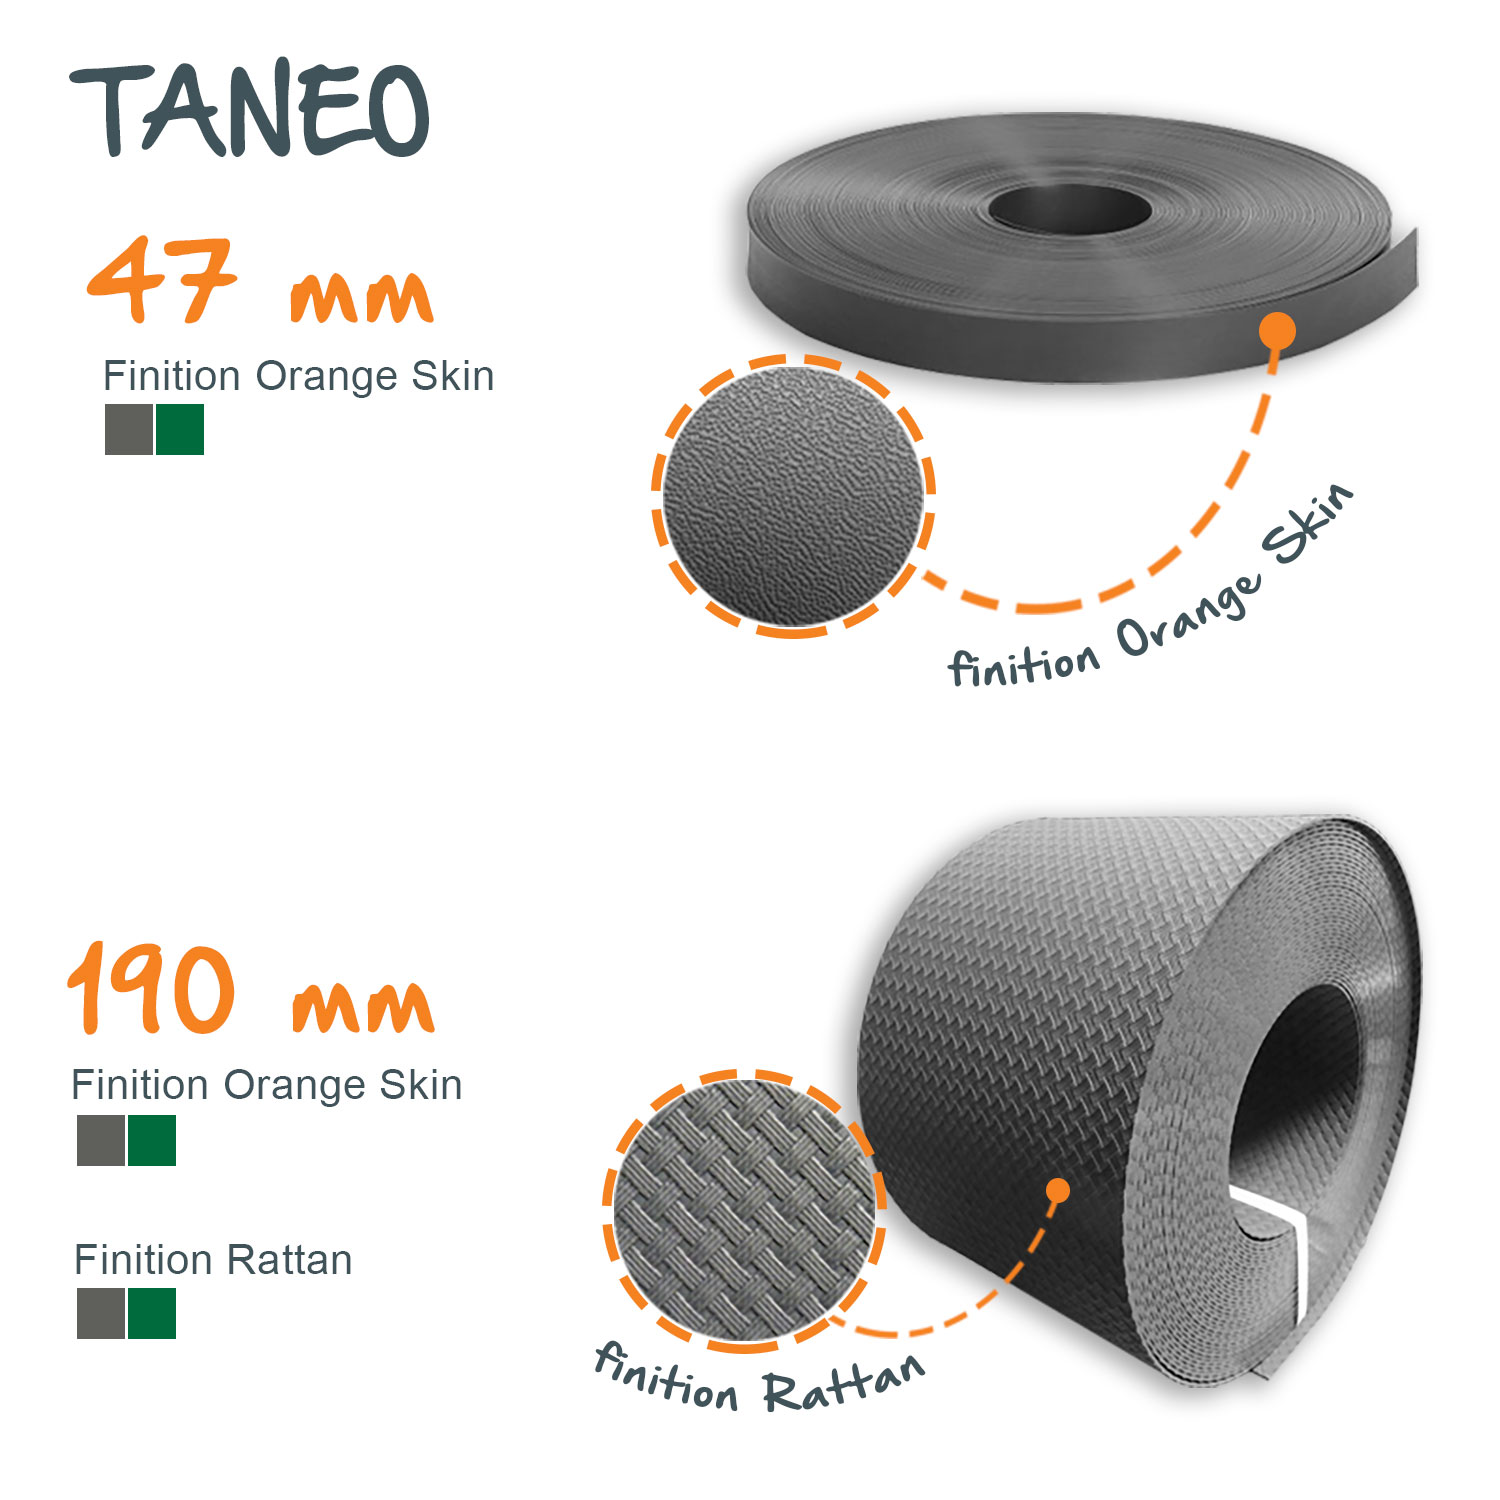 Bandeau occultation TANEO 47 / 190 mm - Lg. 26 / 100 ml - Rattan / Orange Skin